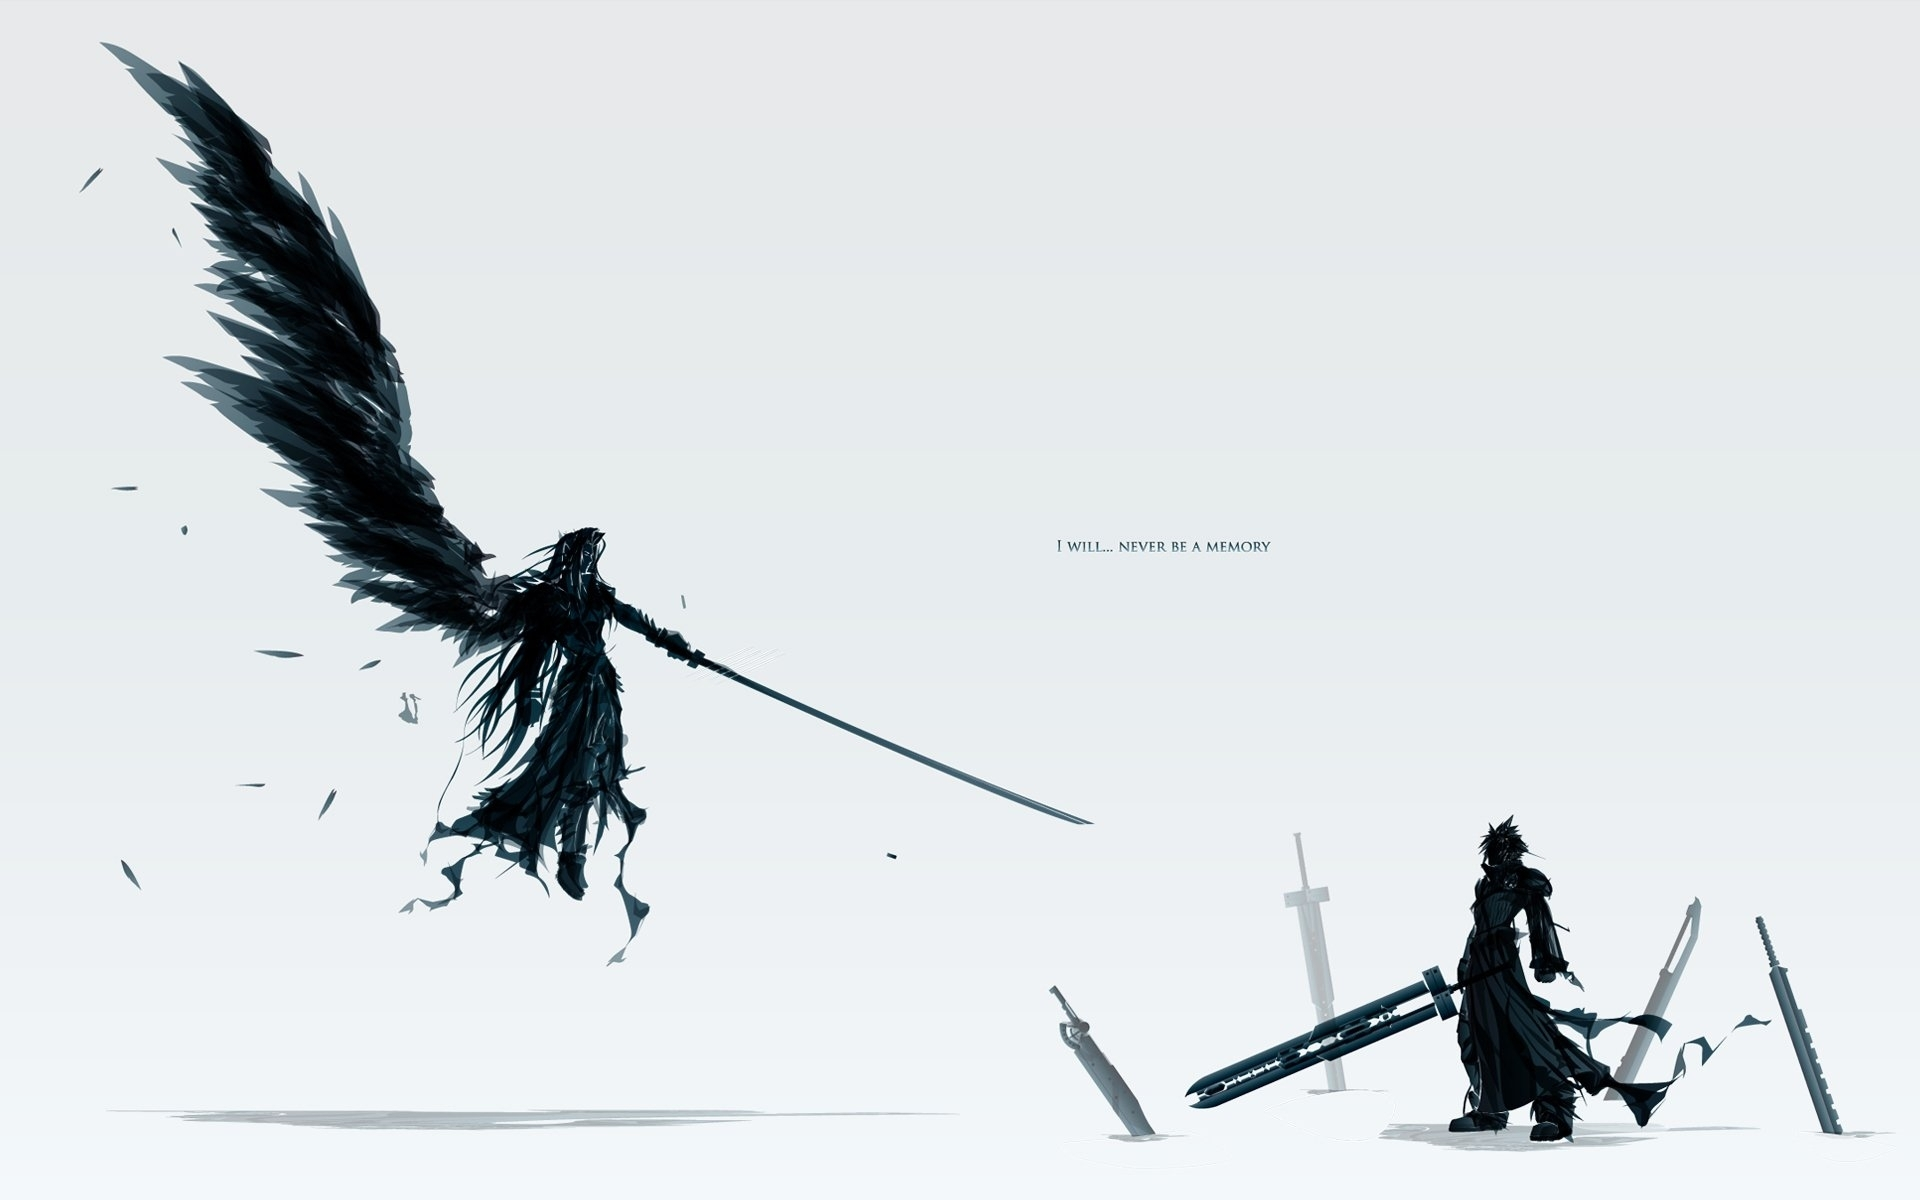 47 sephiroth (final fantasy) hd wallpapers | background images